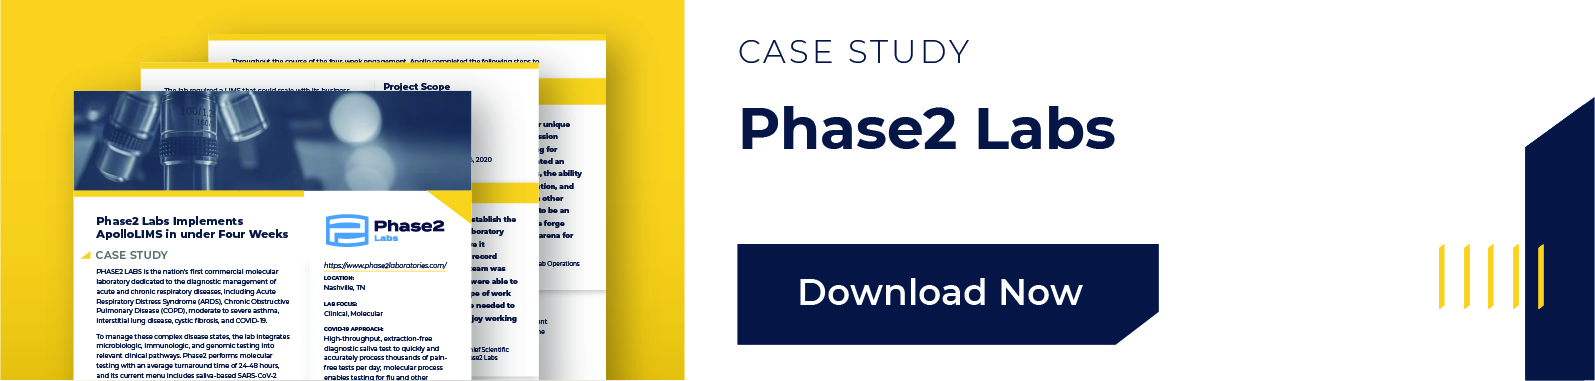 Phase2 Labs Case Study